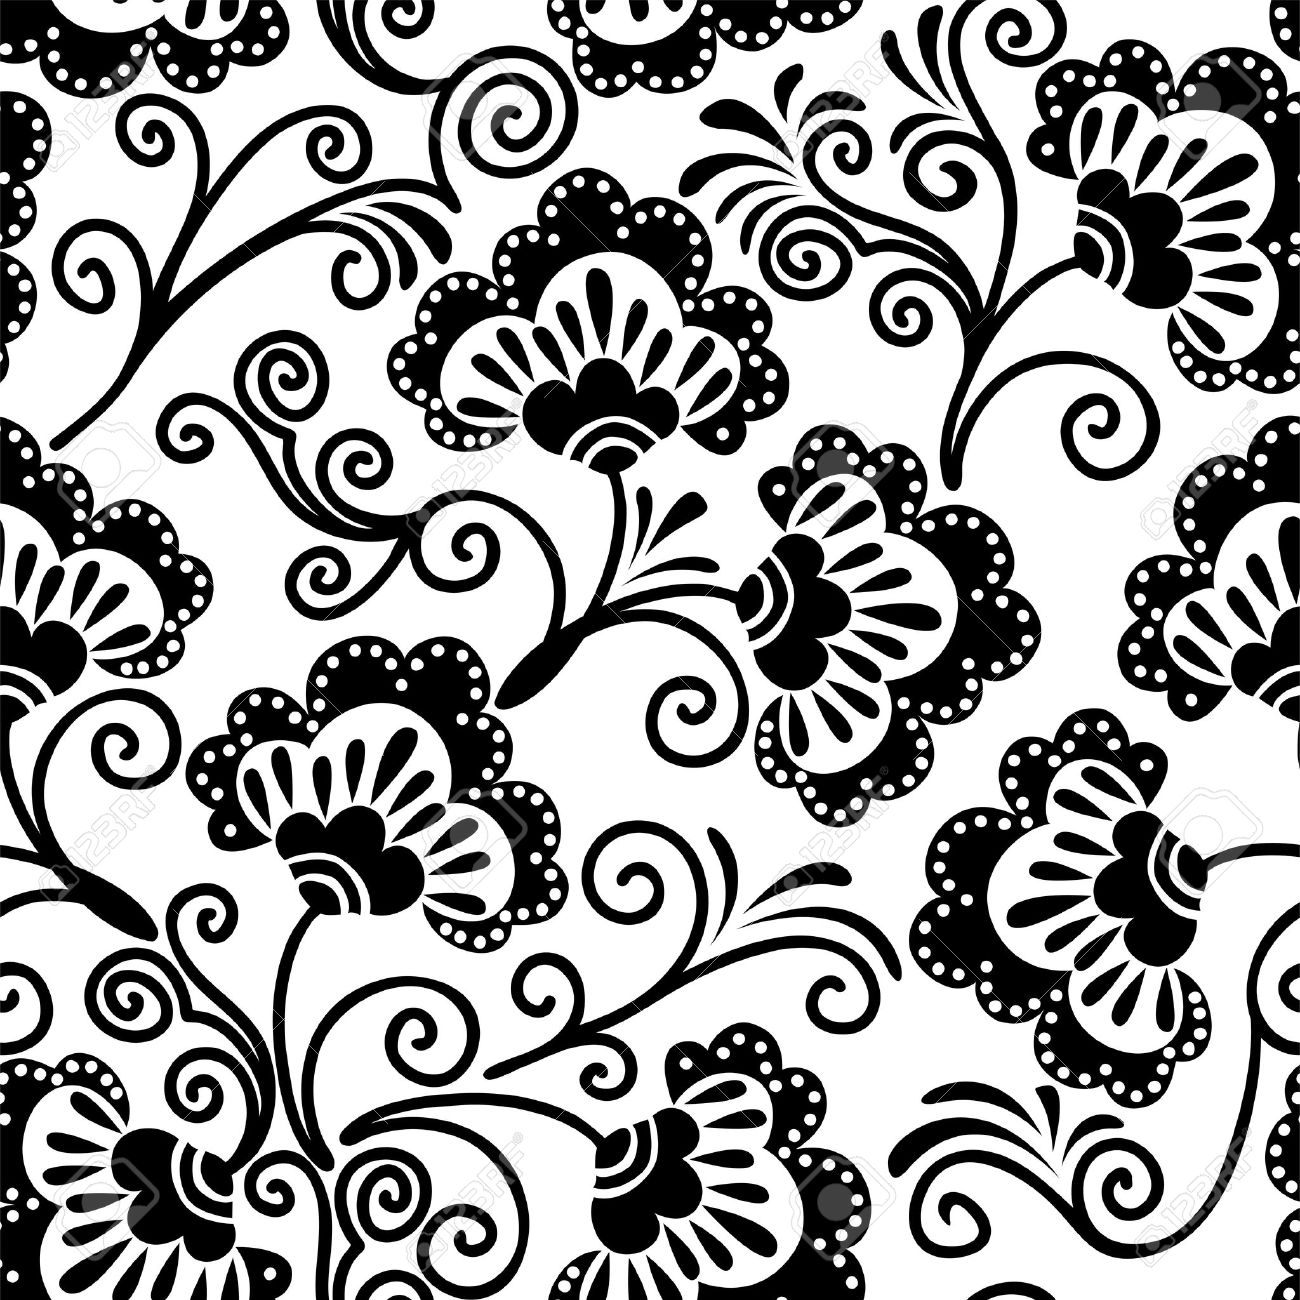 White And Black Floral Background Which Can Be Used As Seamless  -> Floral Fundo Preto